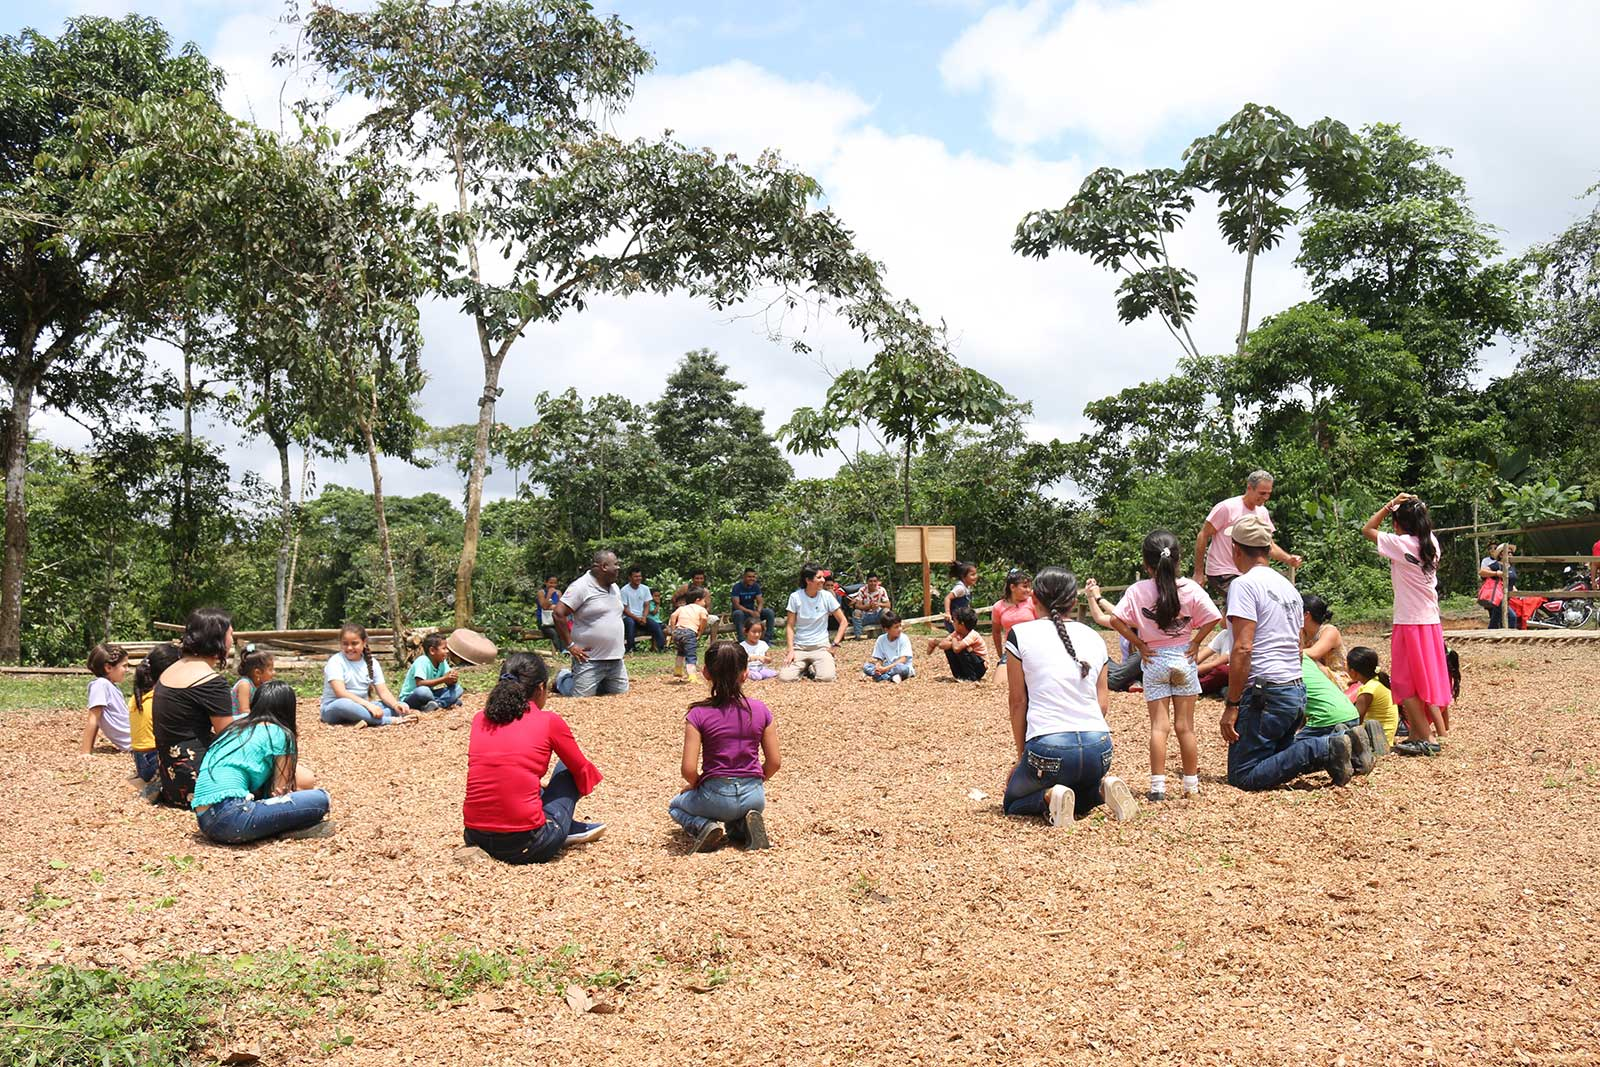 A group of school kids sit in a circle on the ground